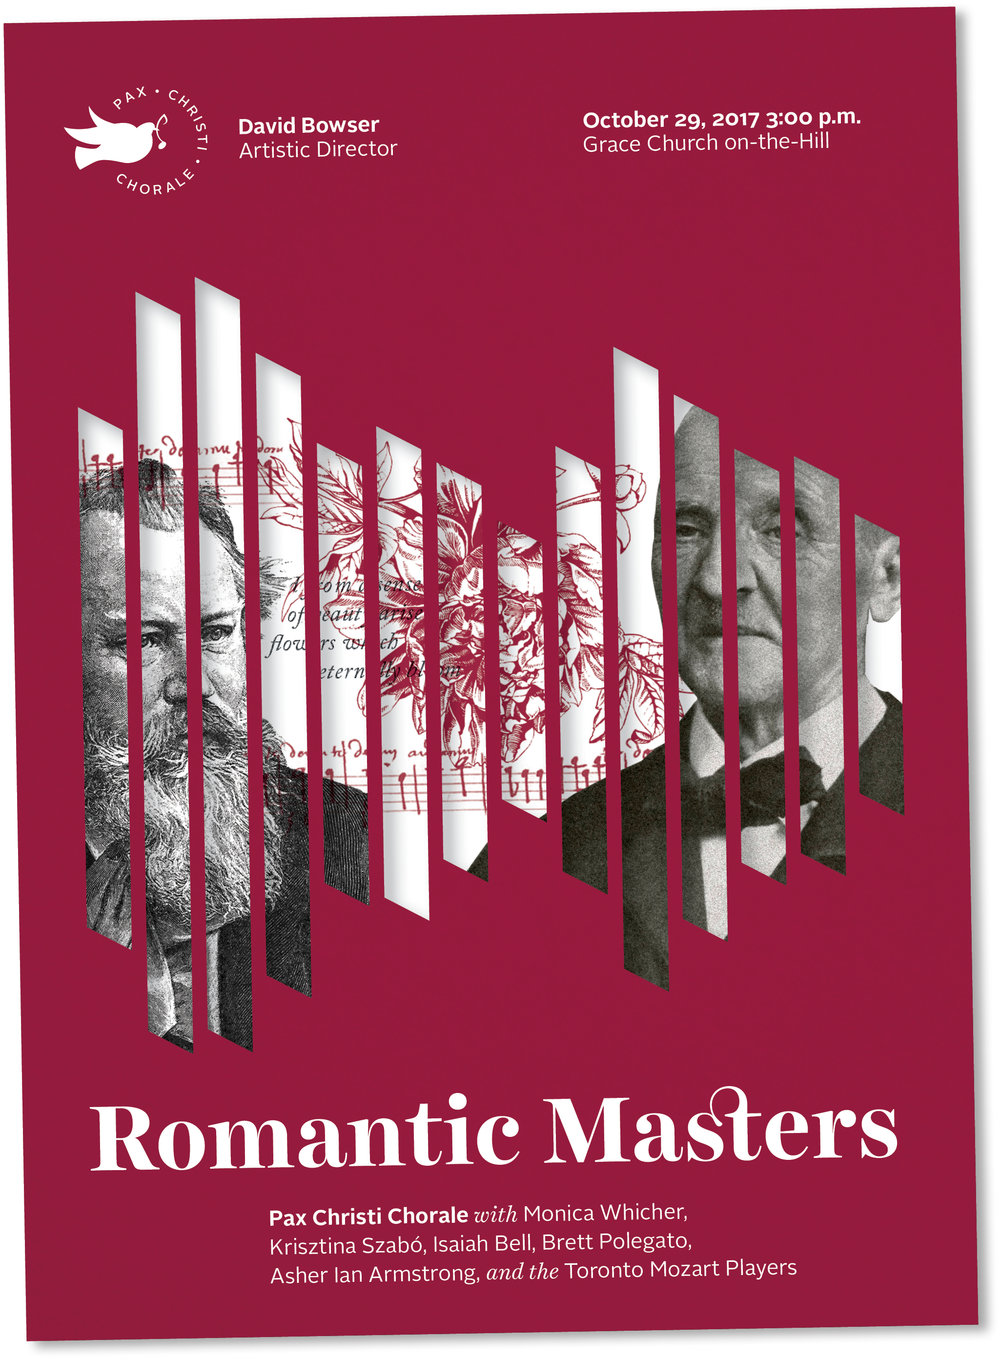 PaxChristi_choir_toronto_gracechurch_choral_music_performance_romancticmasters.jpg